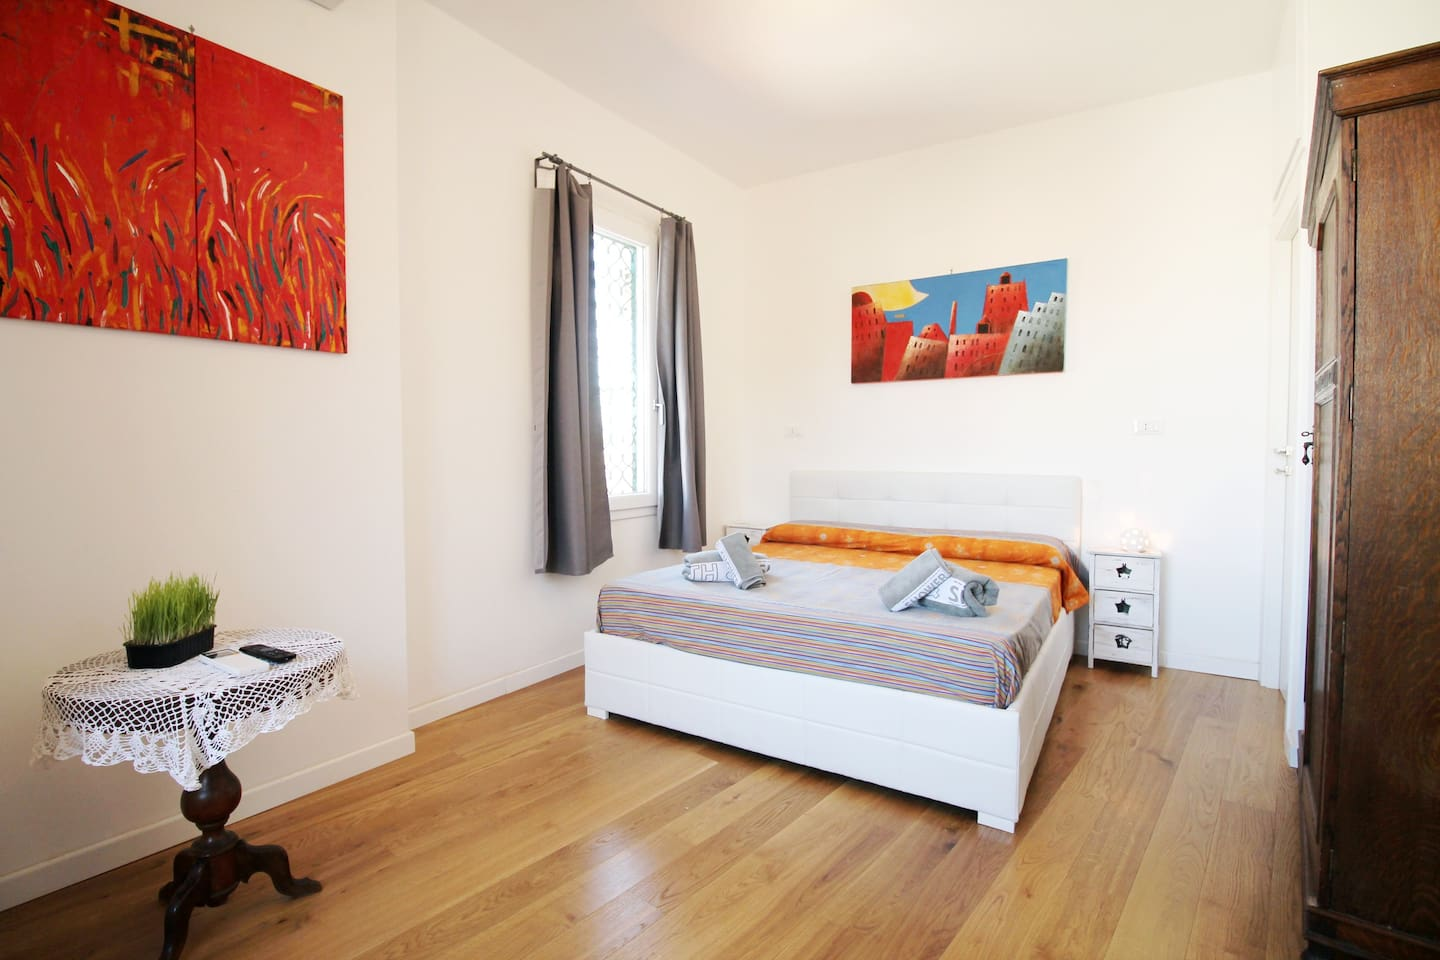 The spacious double bedroom with AC, TV and ensuite bathroom.